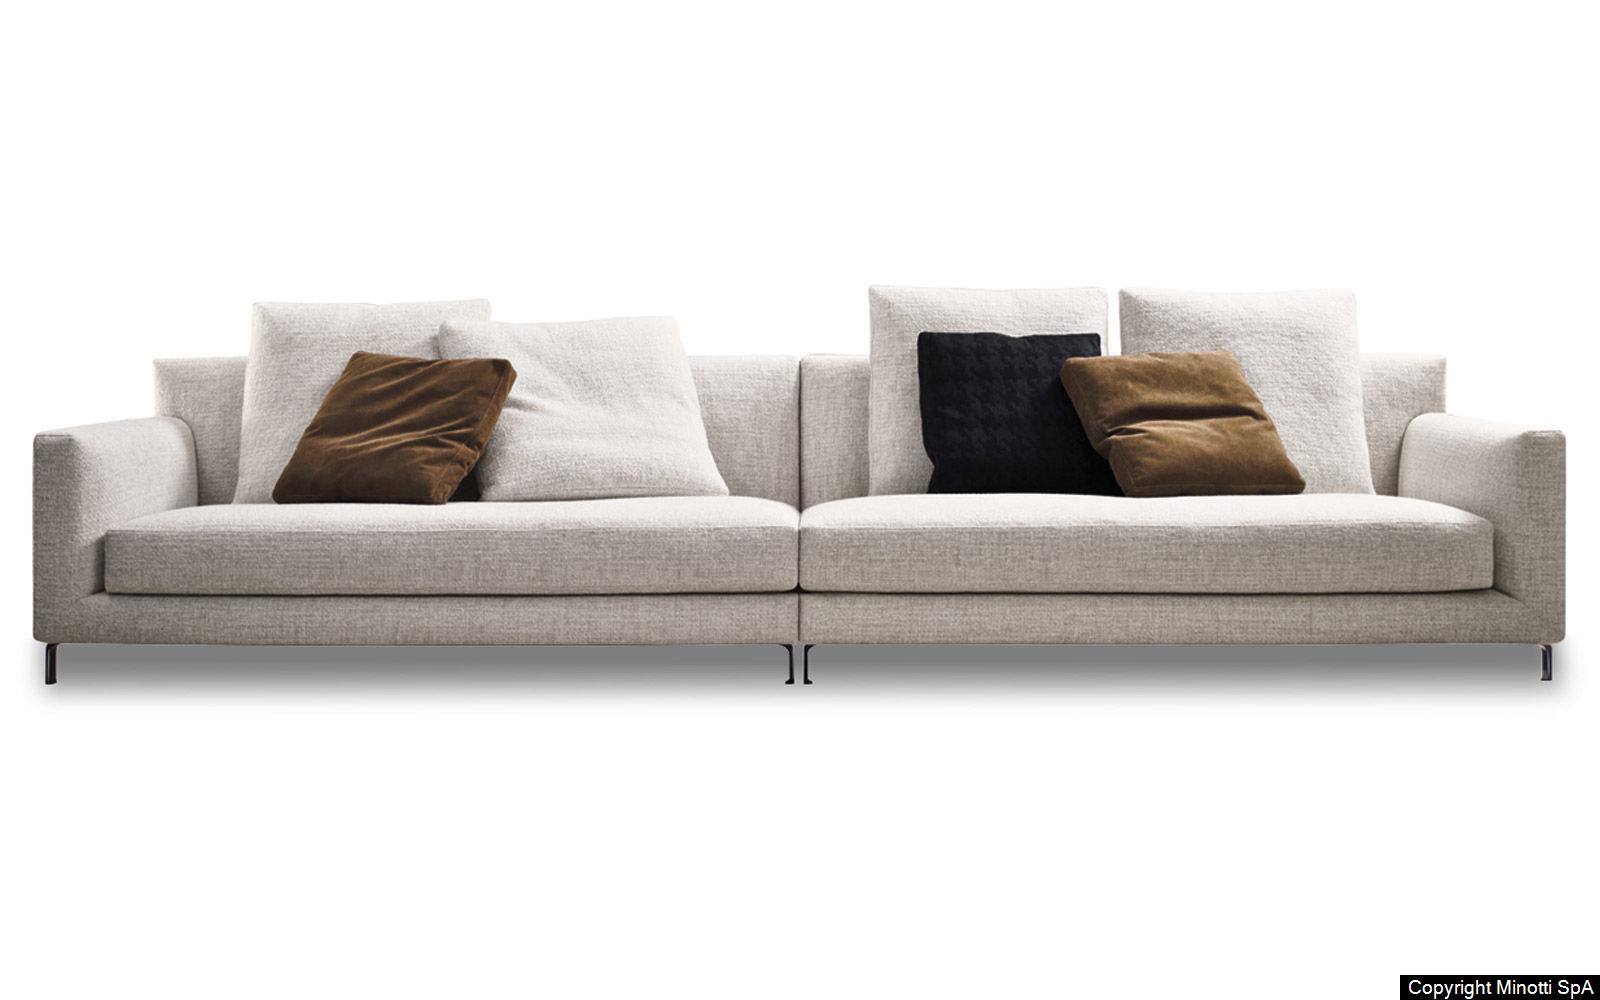 More About Minotti Fabrics